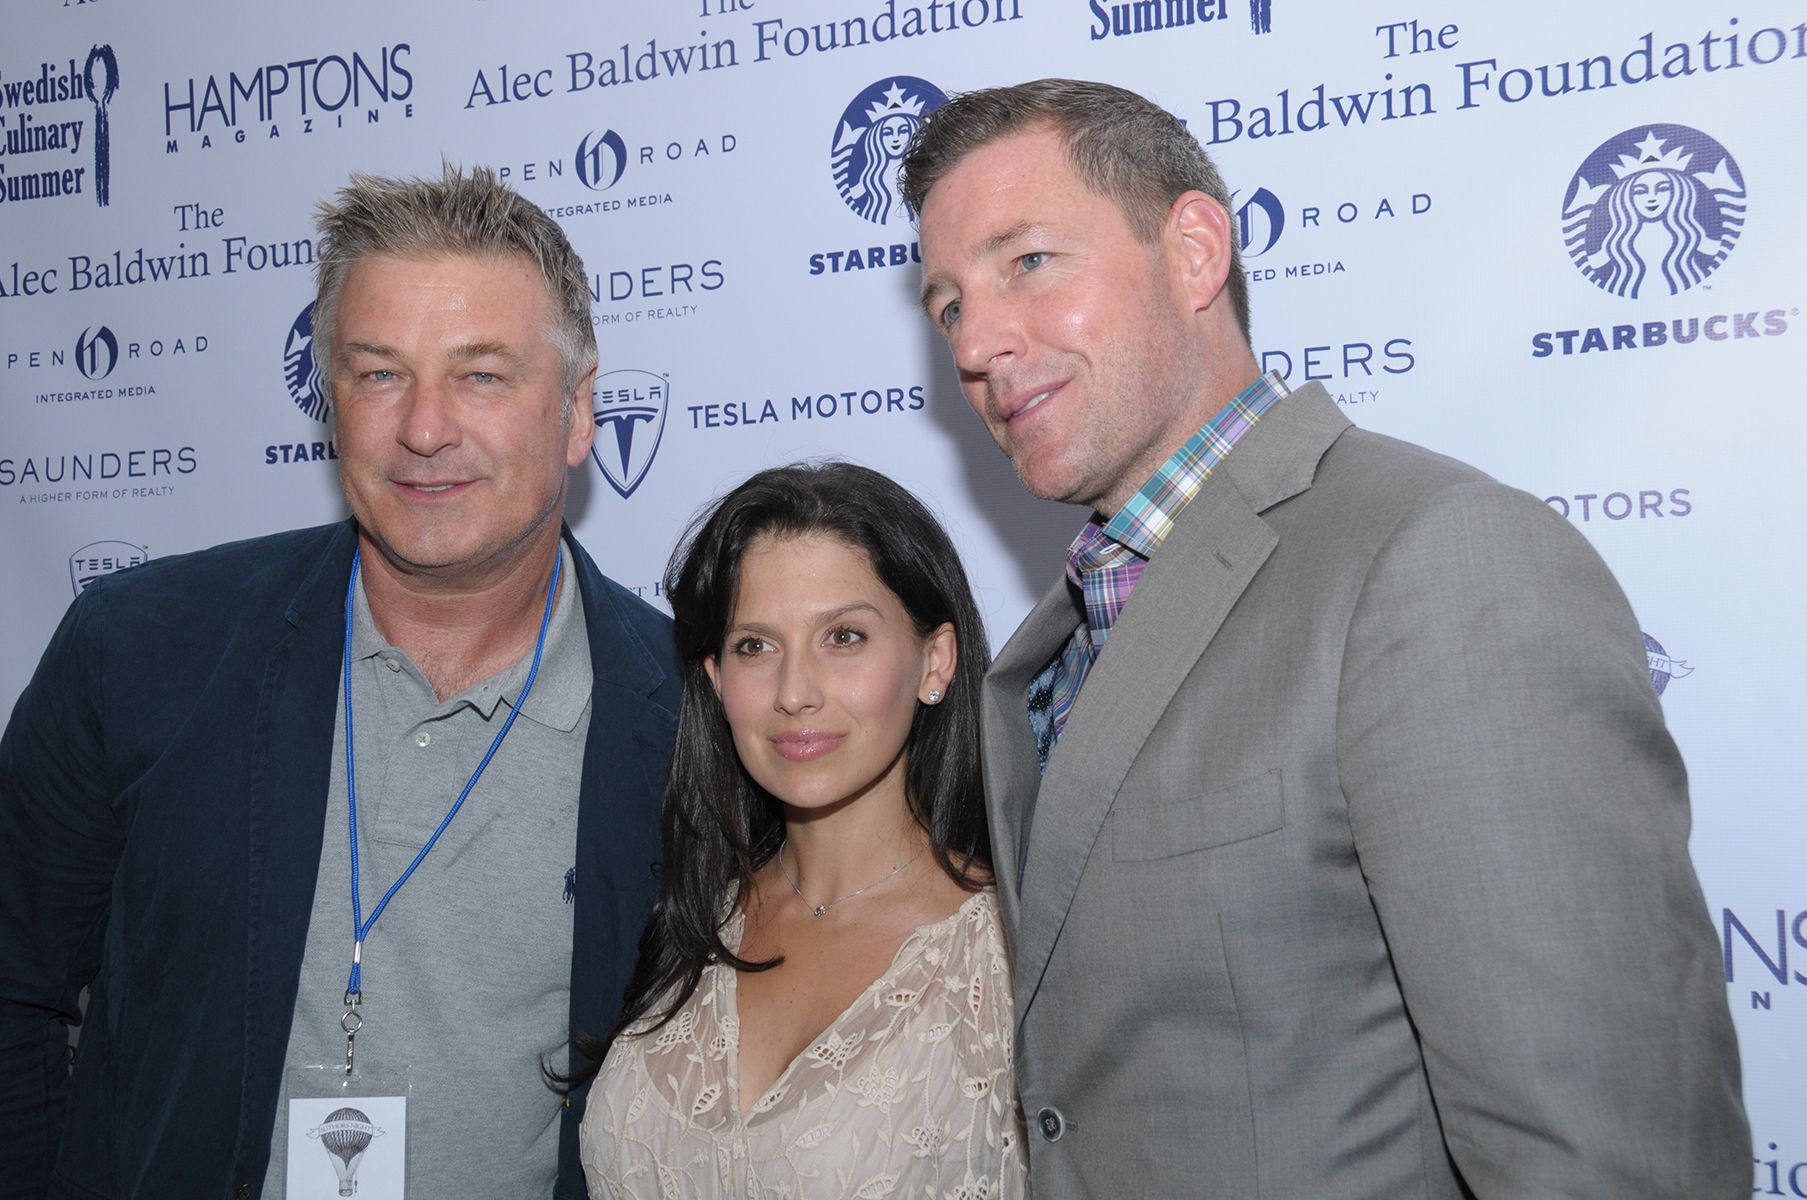 Alec & Hilaria Baldwin with Edward Burns at Authors Night (credit: richard lewin photography)